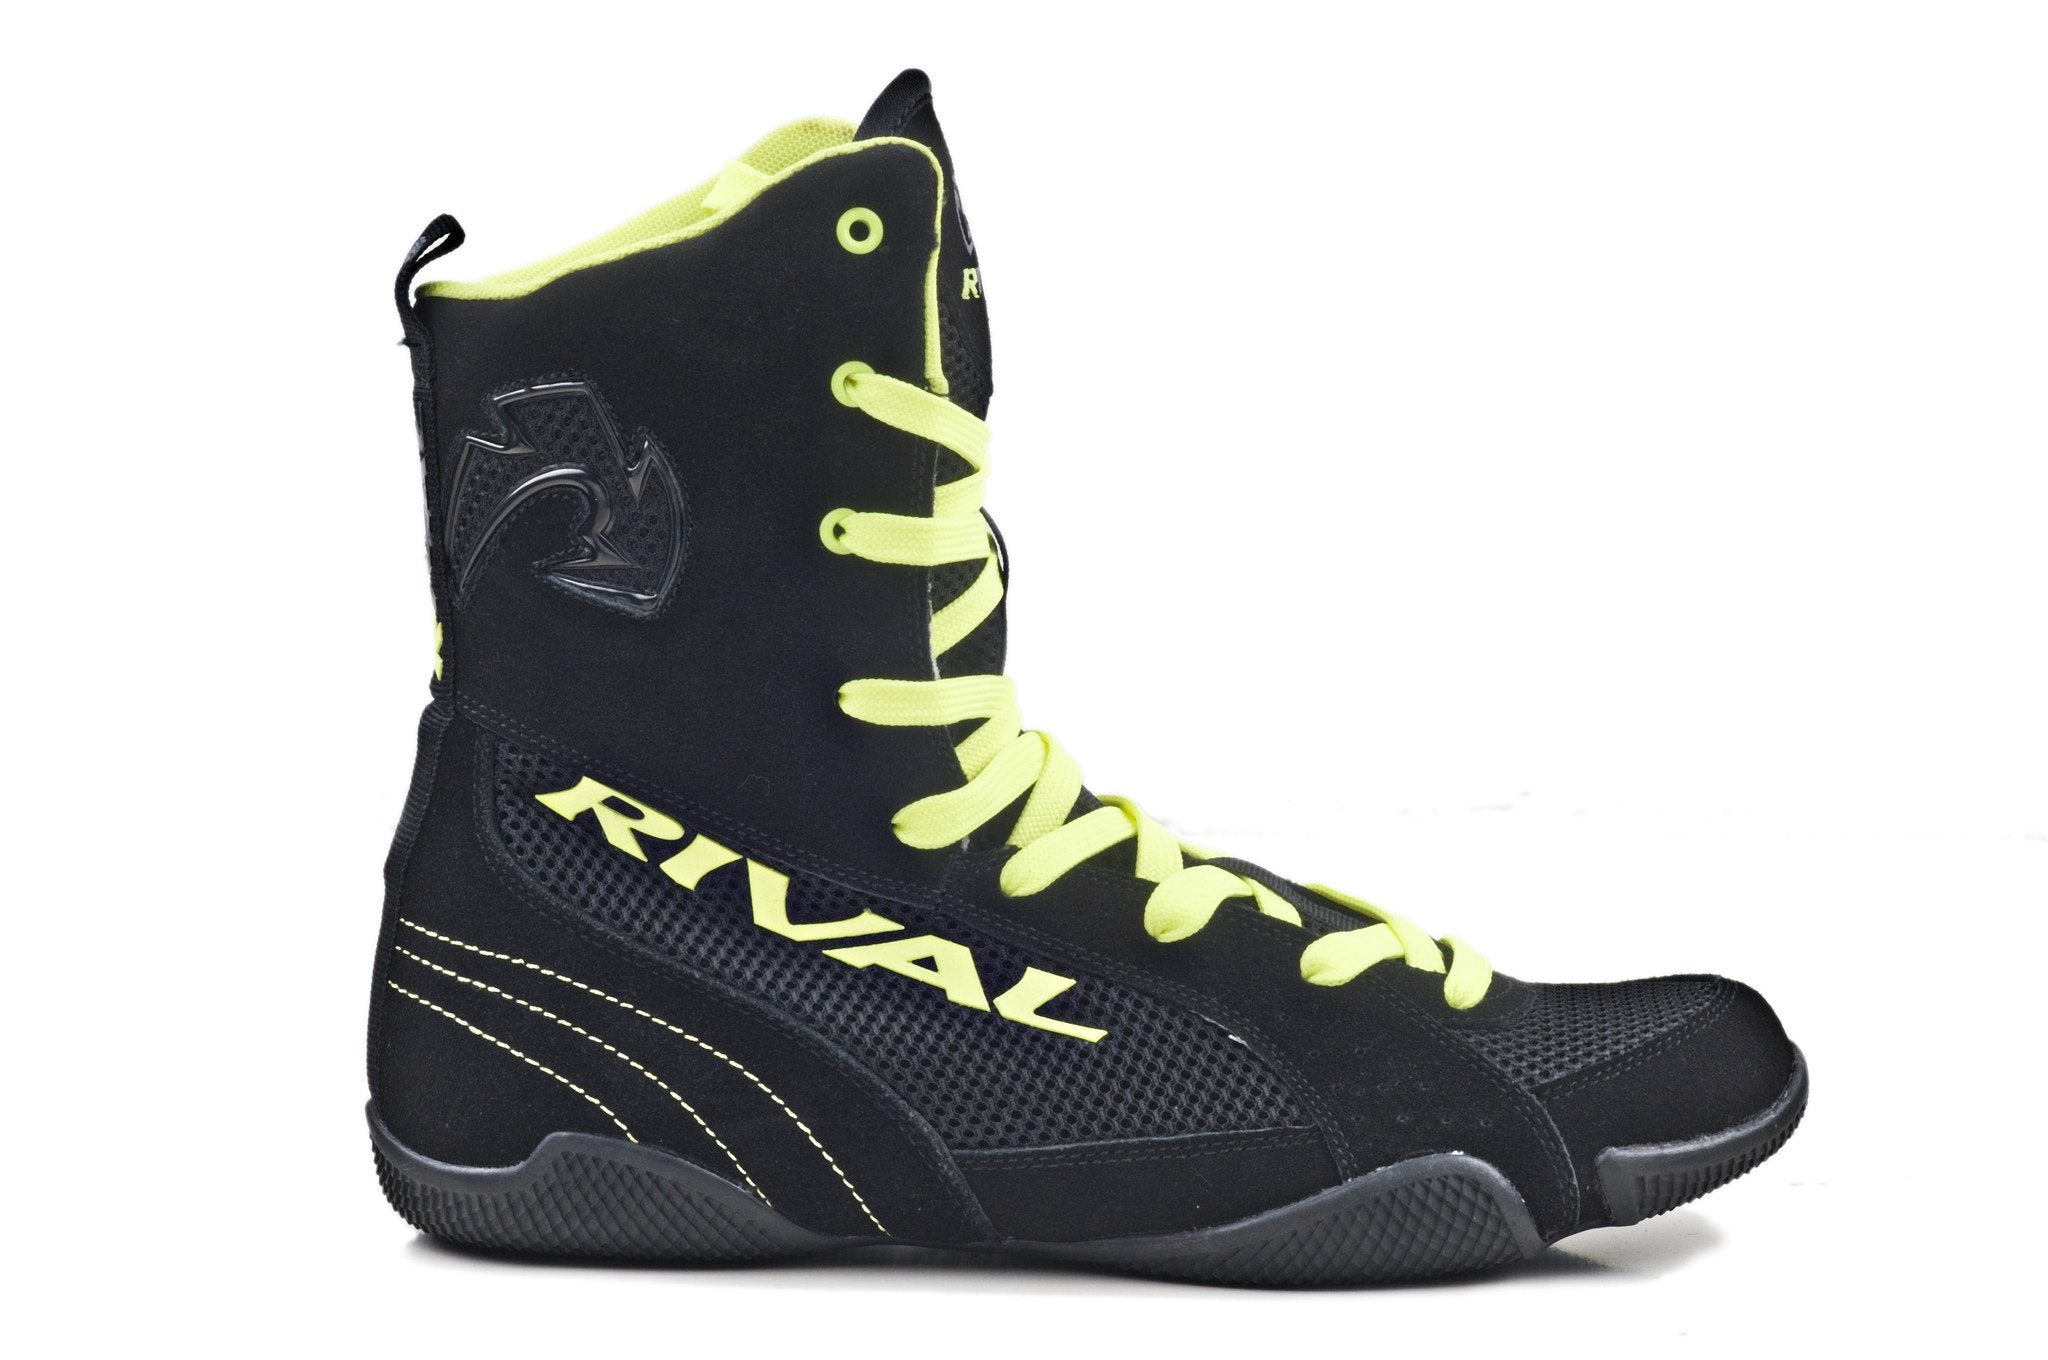 Rsx One Classic Hi Top Boxing Boots Rival Boxing Gear Usa